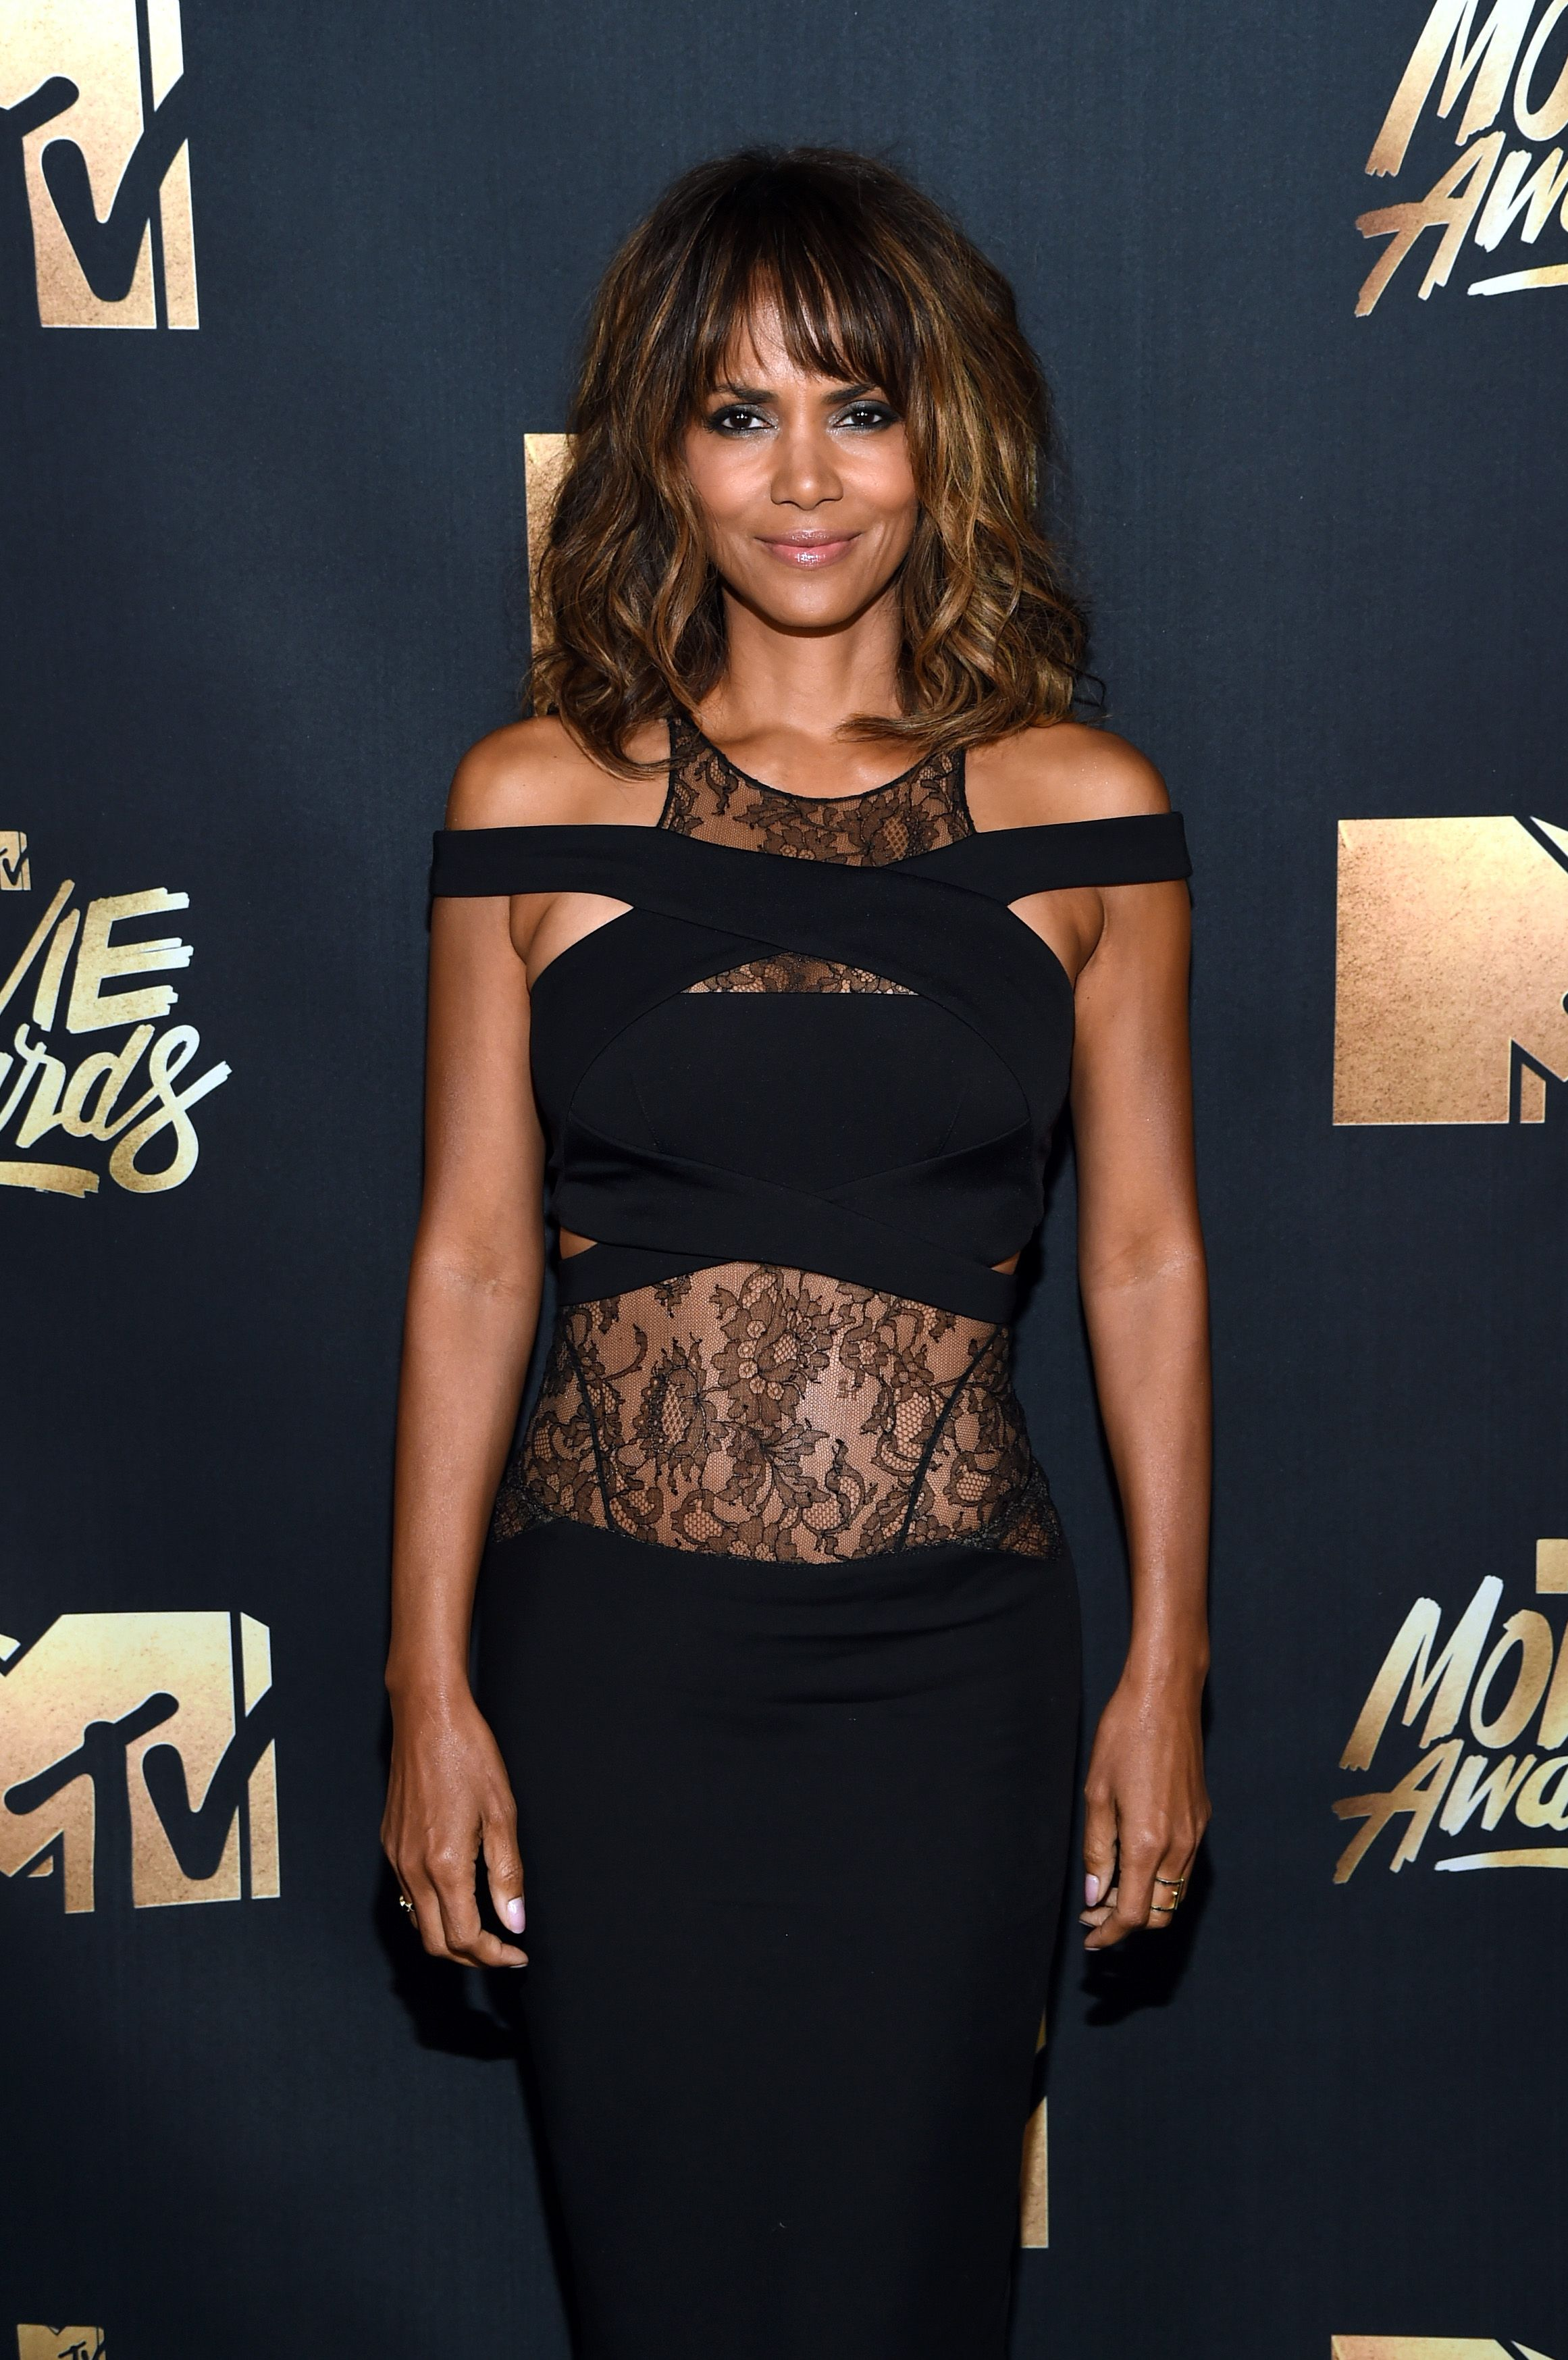 Halle Berry during the 2016 MTV Movie Awards at Warner Bros. Studios on April 9, 2016 in Burbank, California. | Source: Getty Images